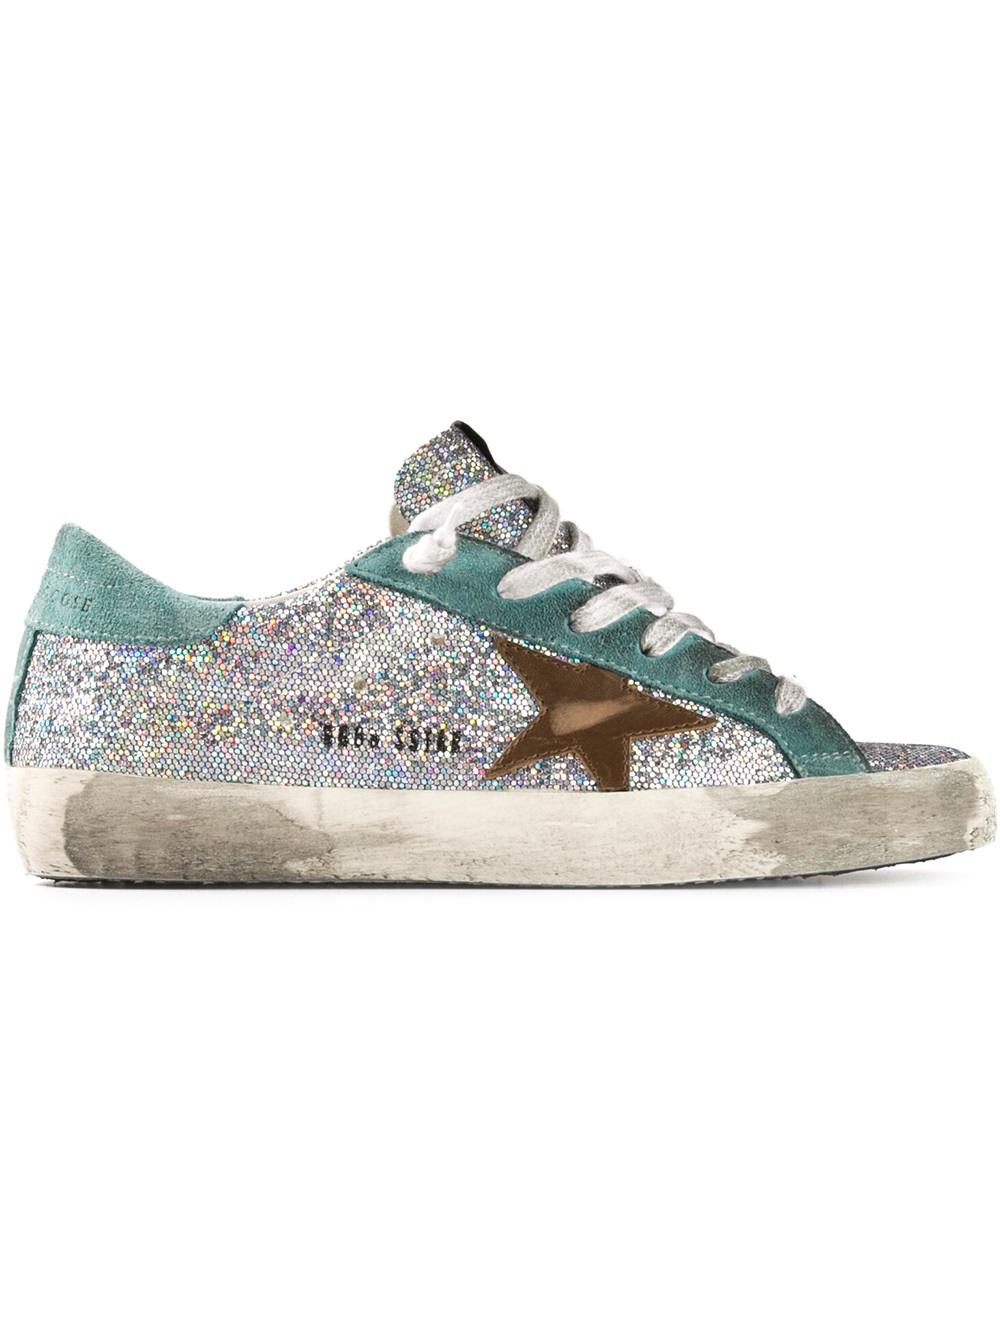 lyst golden goose deluxe brand glitter embellished sneaker in blue. Black Bedroom Furniture Sets. Home Design Ideas